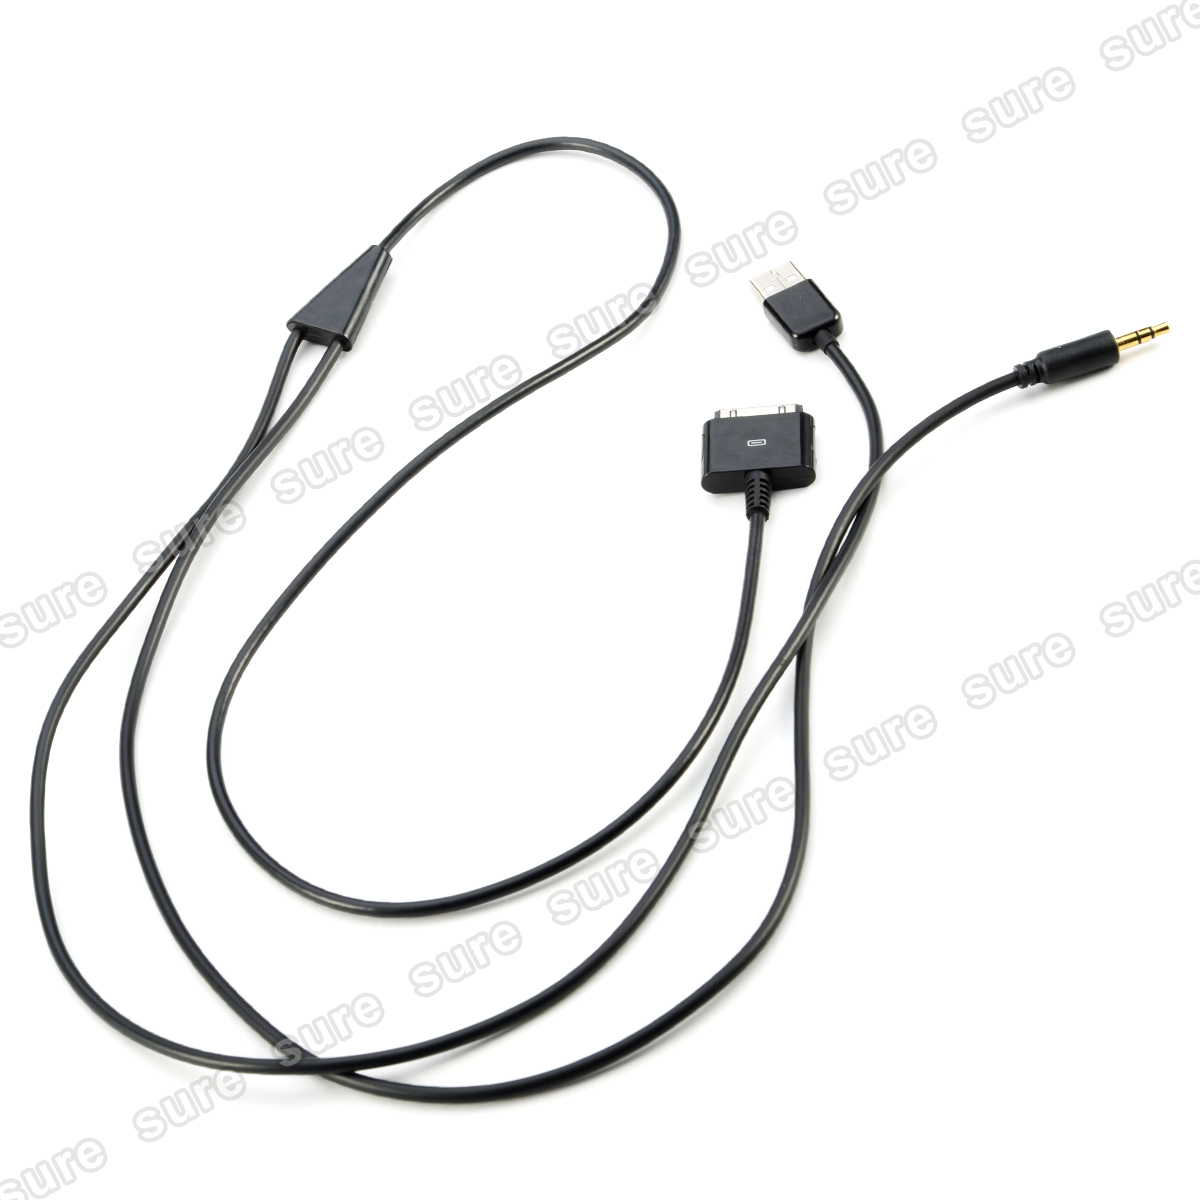 Black 3 5mm Aux Usb Car Audio Cable For Apple Iphone Ipod Ipad Bmw Volvo Ford